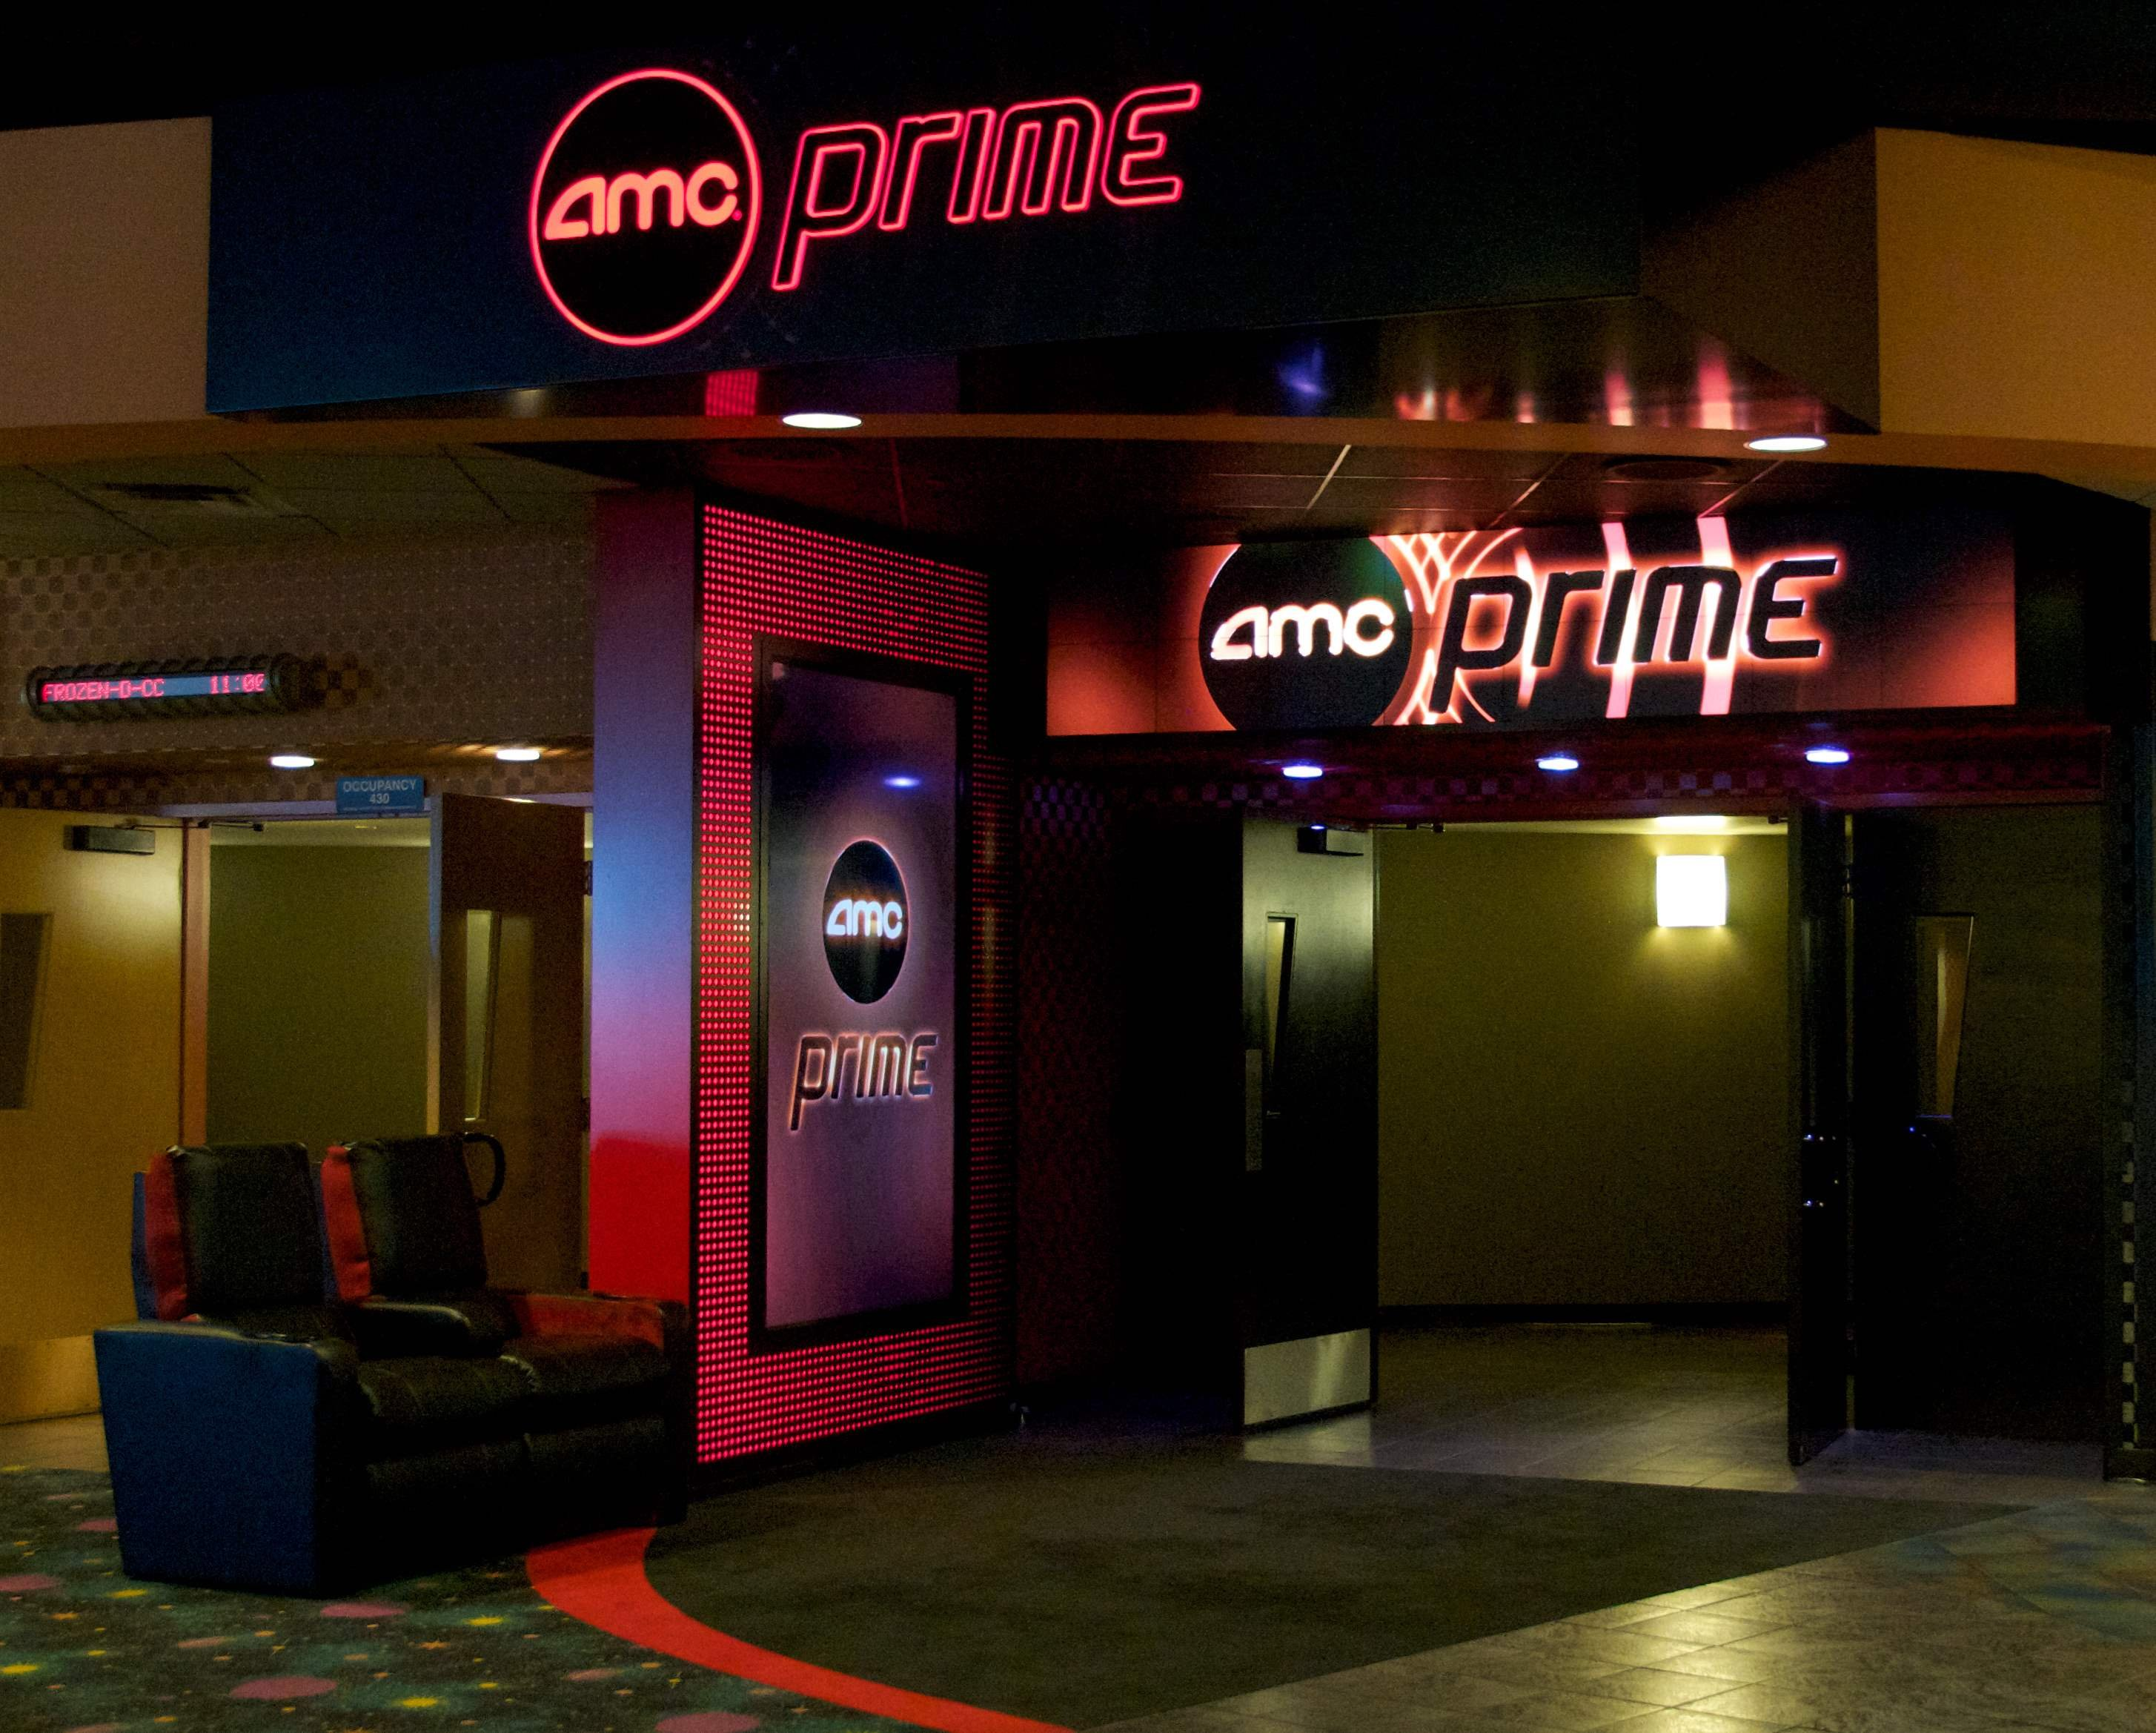 amc prime theaters dolby atmos guitammer seat transducers